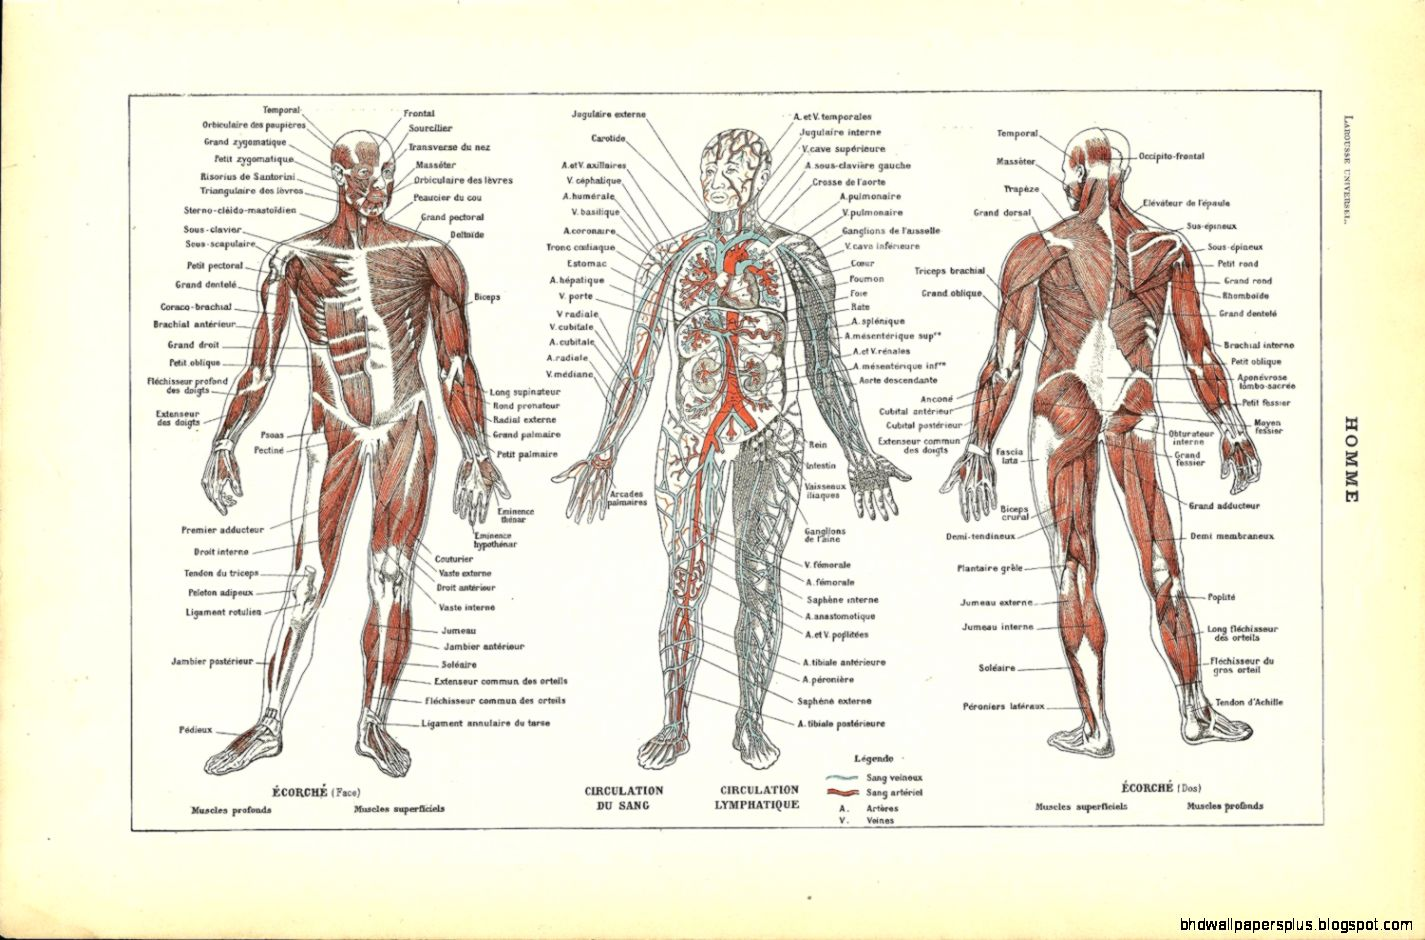 Anatomy Dictionary | HD Wallpapers Plus